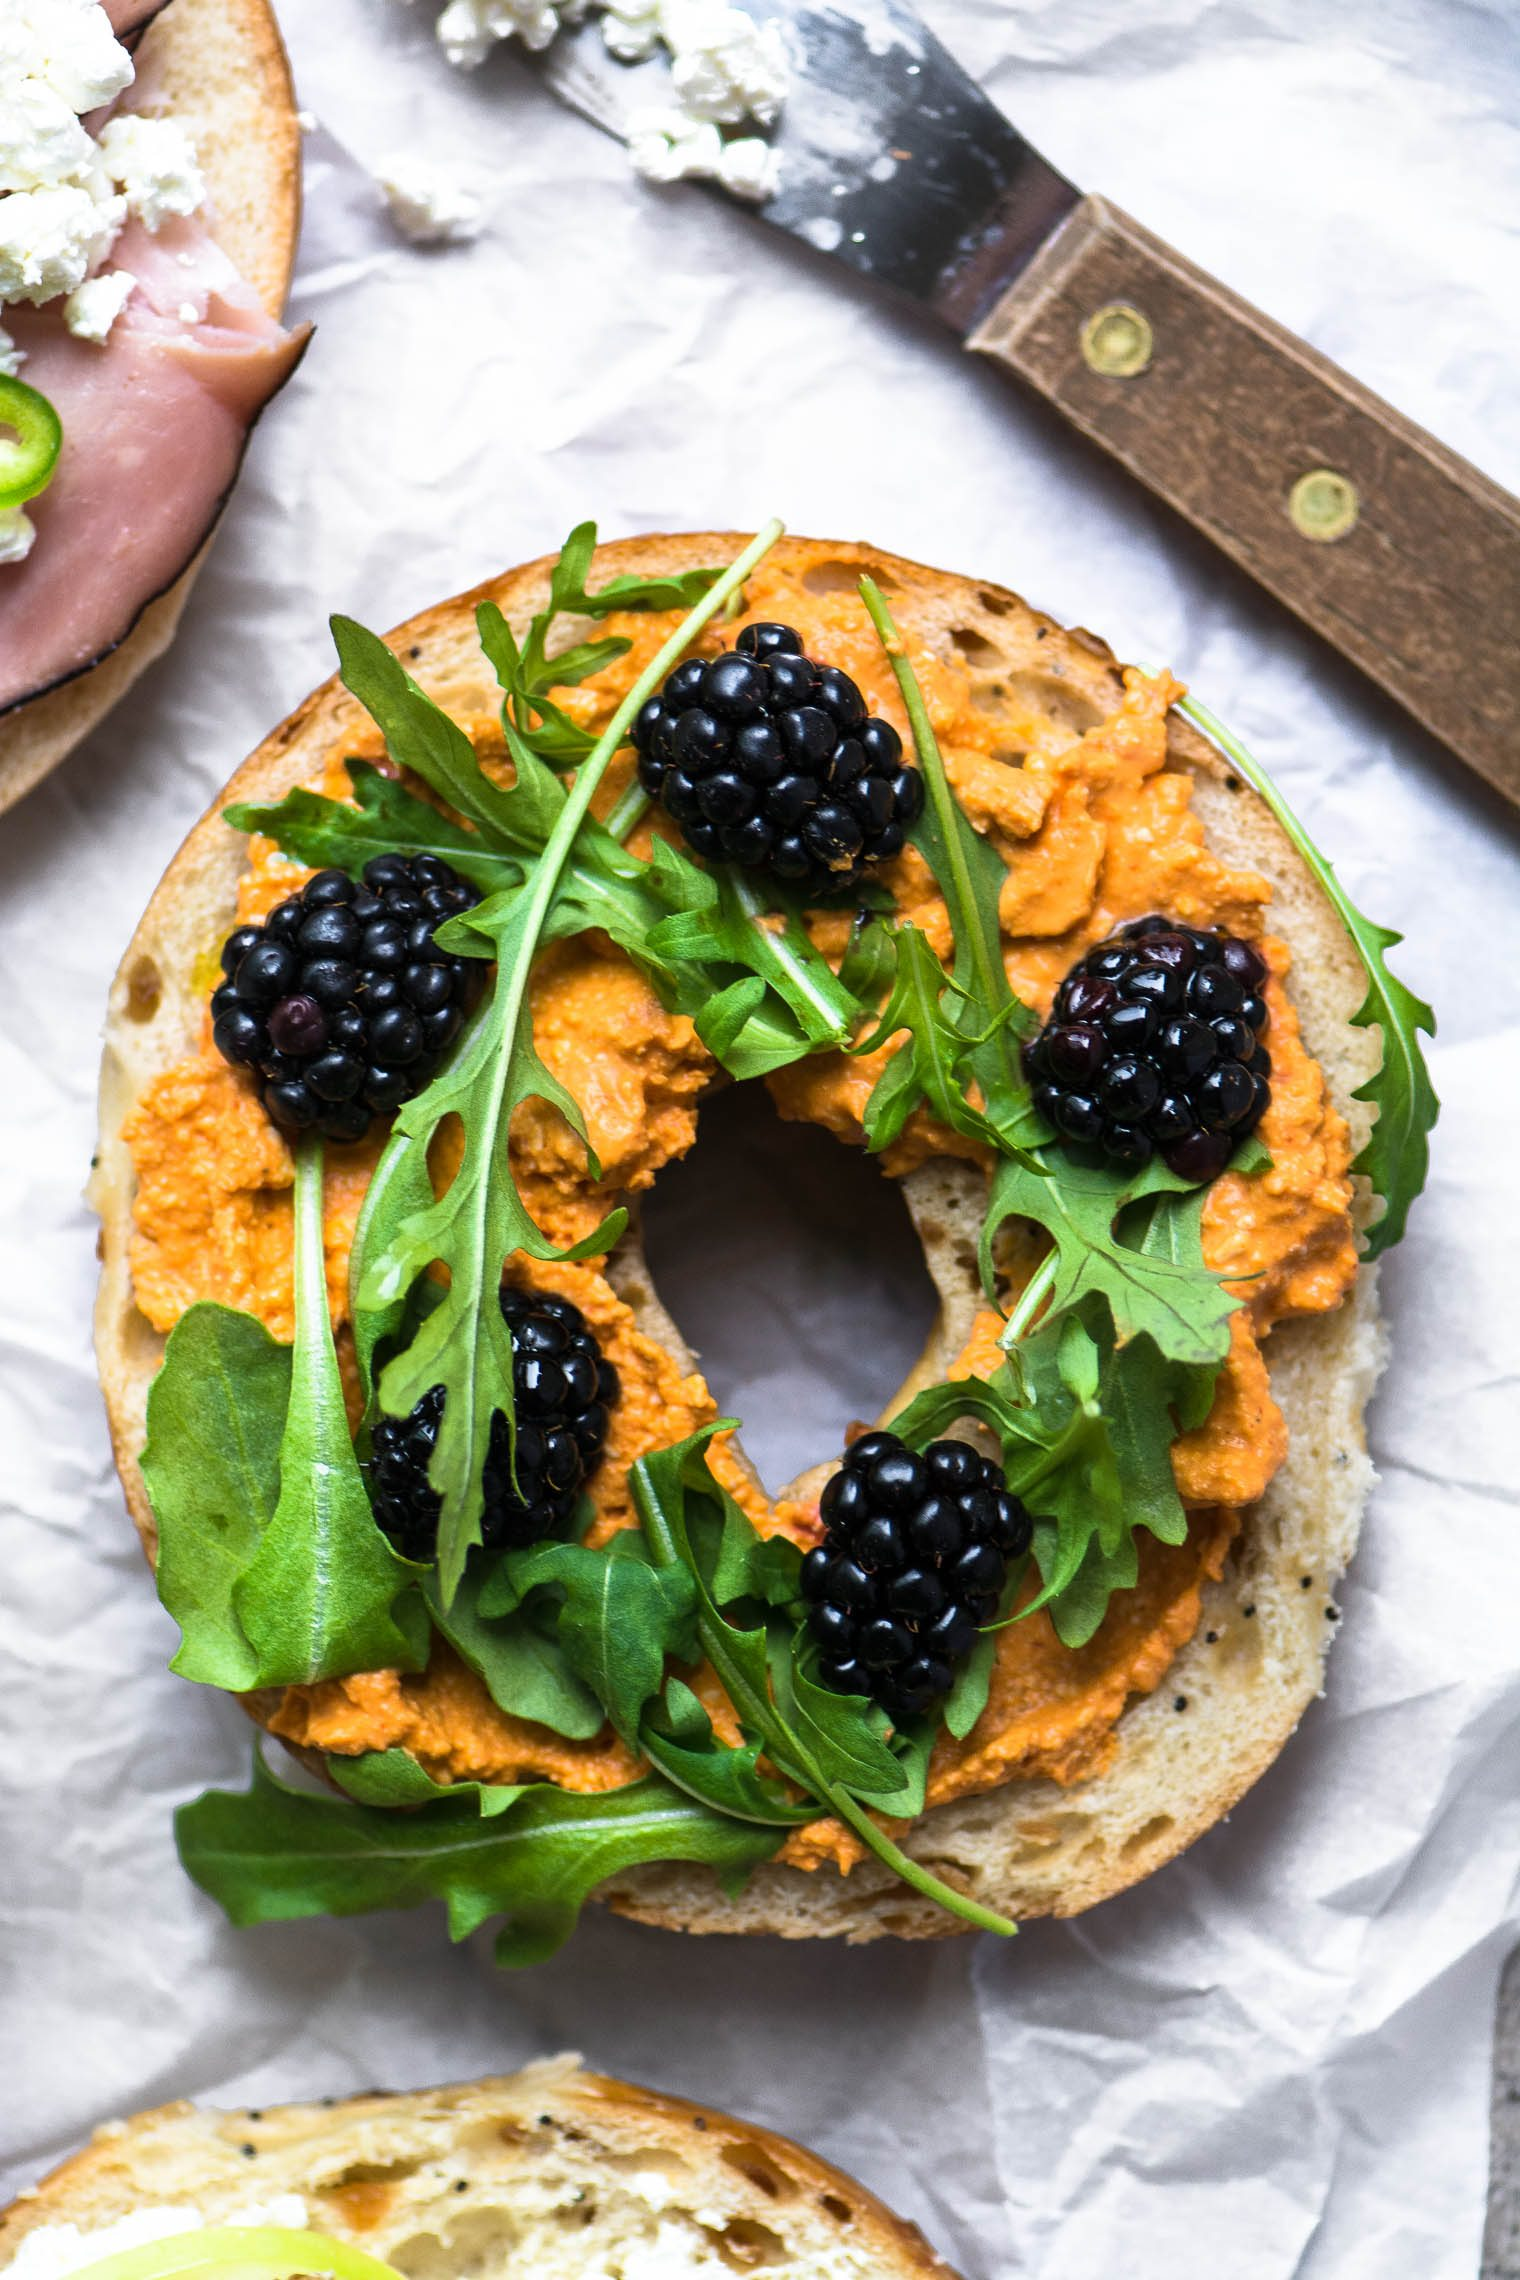 Irresistible Bagel Toast (your new favorite snack!) Bagel half topped with berries